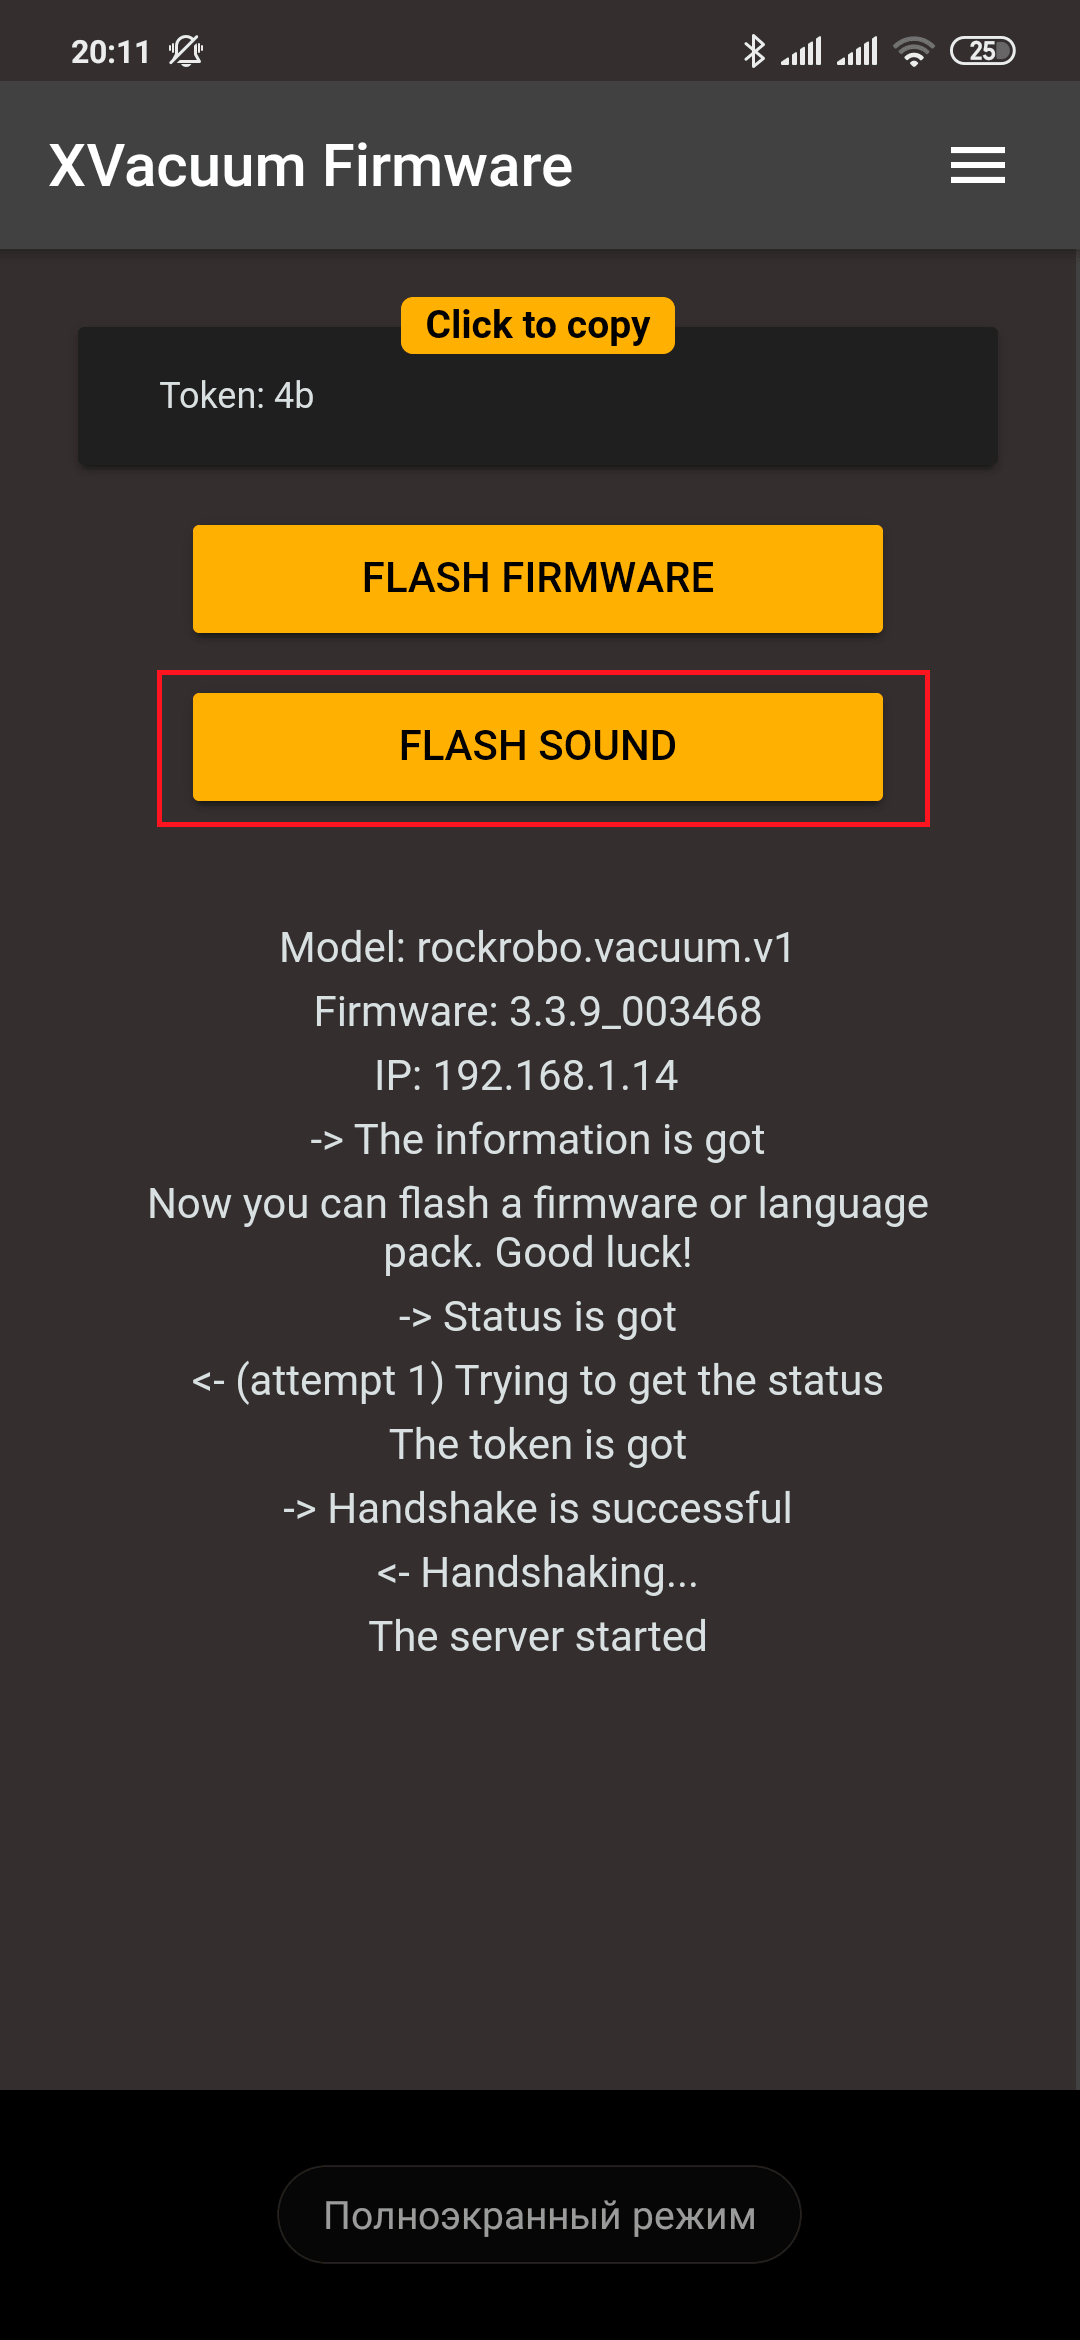 Xvacuum Firmware flash sound